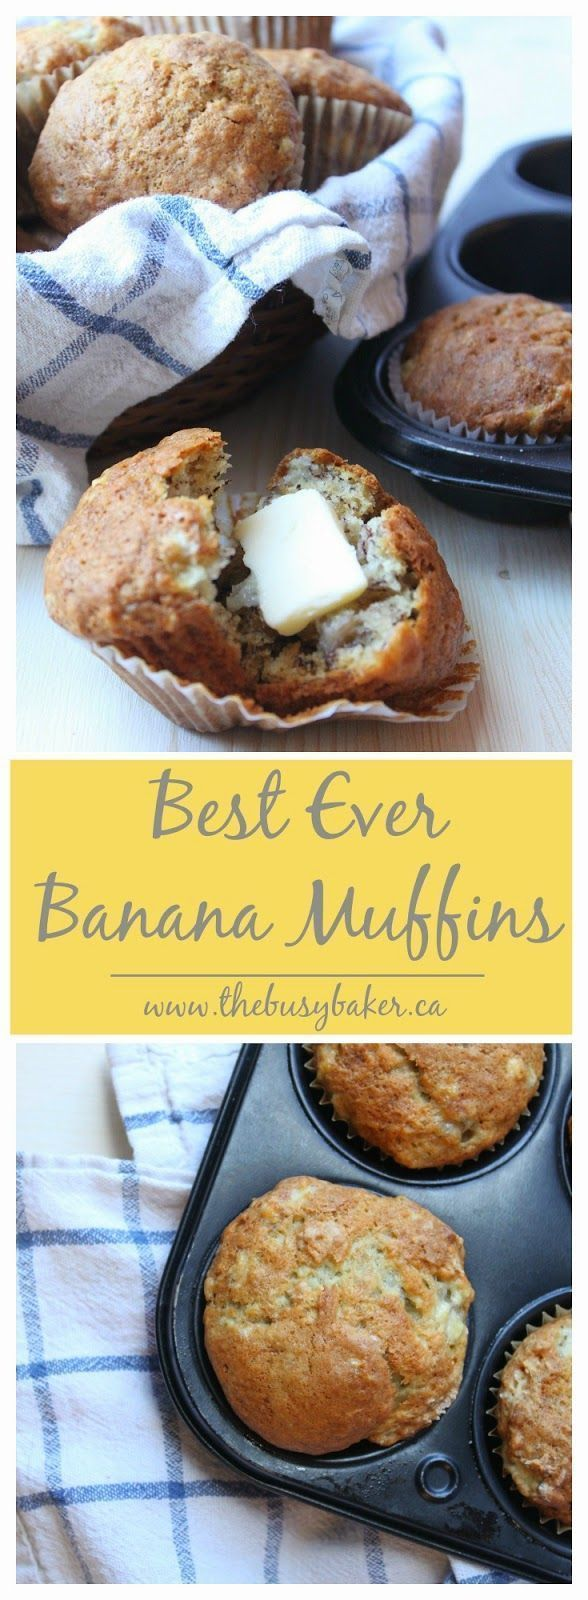 Ever Banana Muffins These are the best banana muffins I have ever had! And so simple to make!These are the best banana muffins I have ever had! And so simple to make!